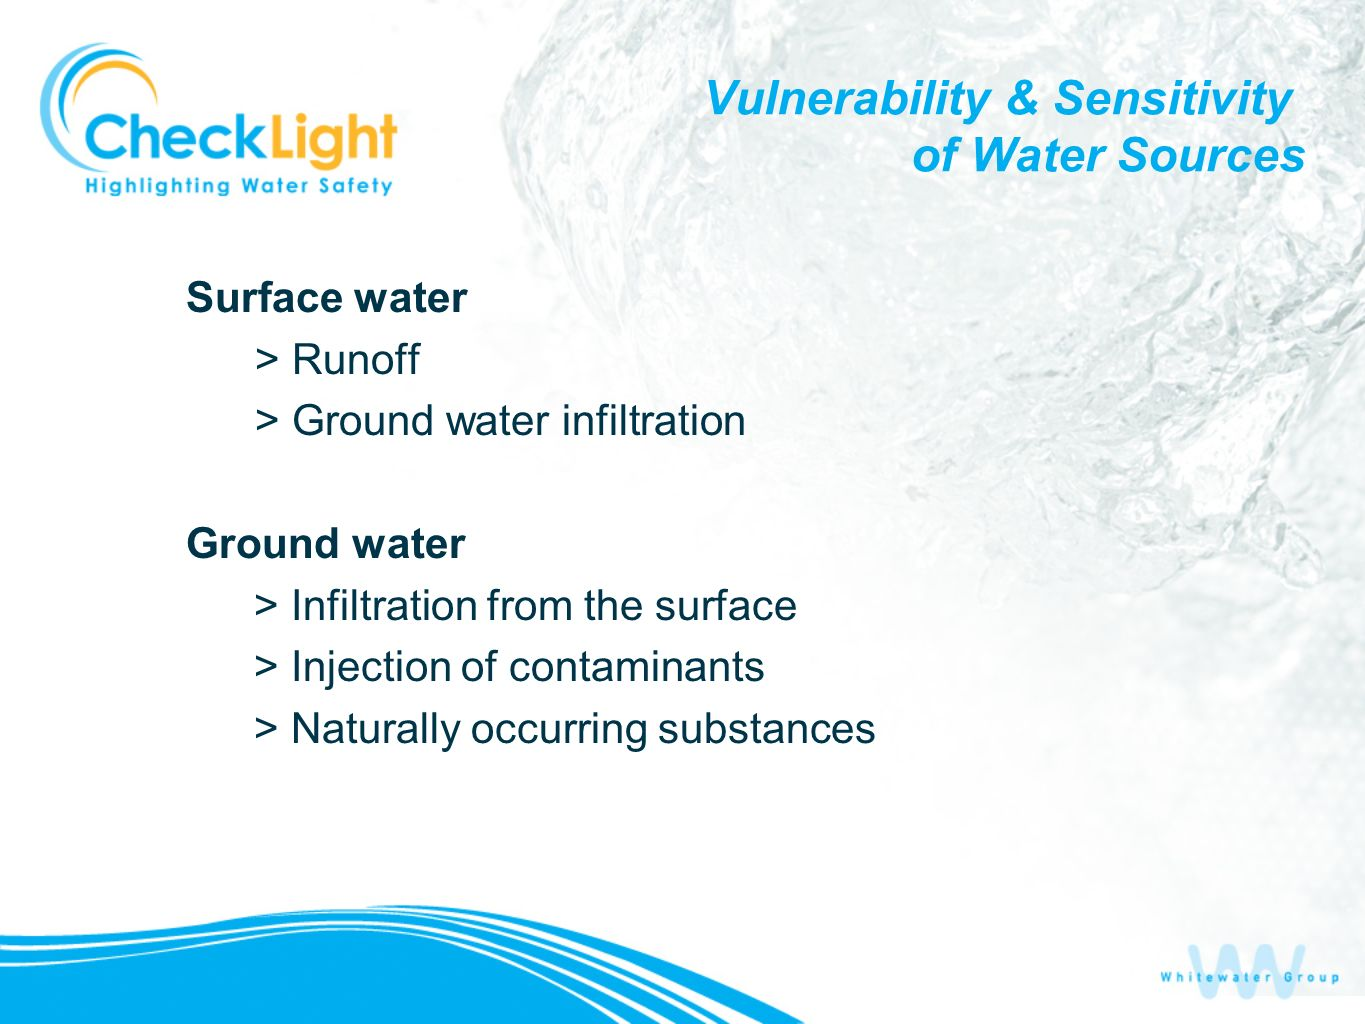 Vulnerability & Sensitivity of Water Sources